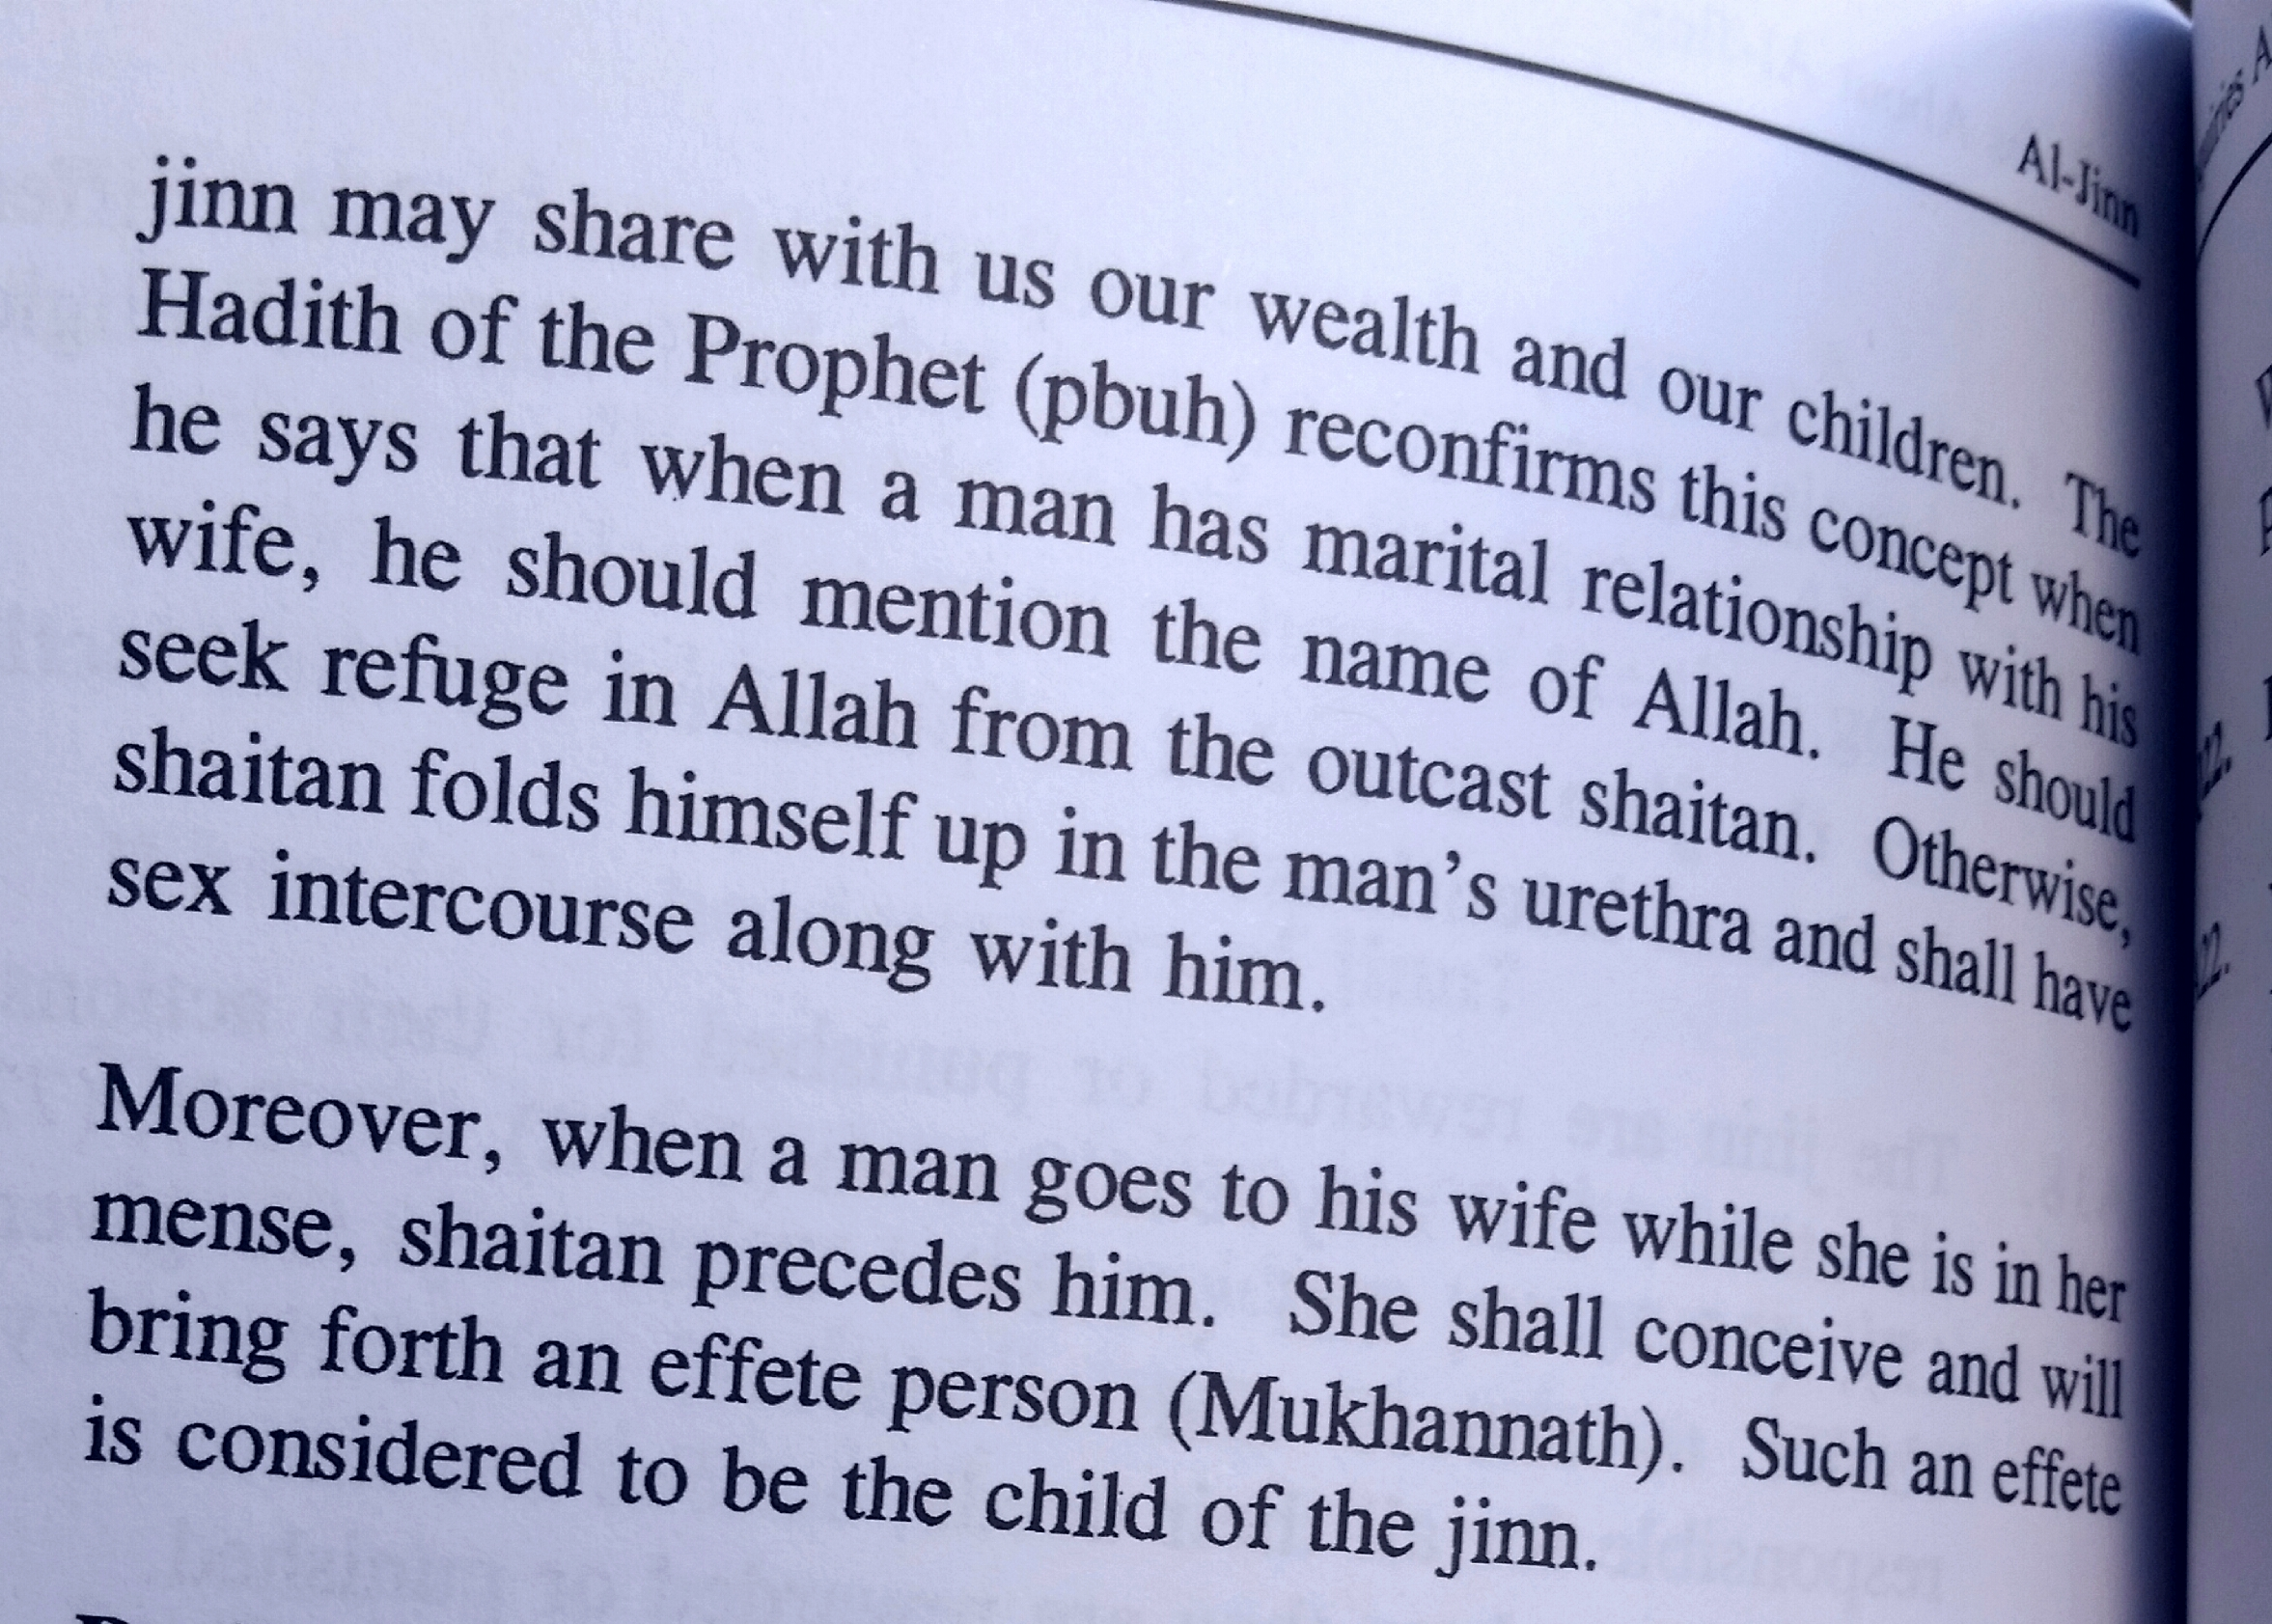 Careful - a shaitan might be in your man's urethra (Source: Al-Jinn by Ahmad Sakr)